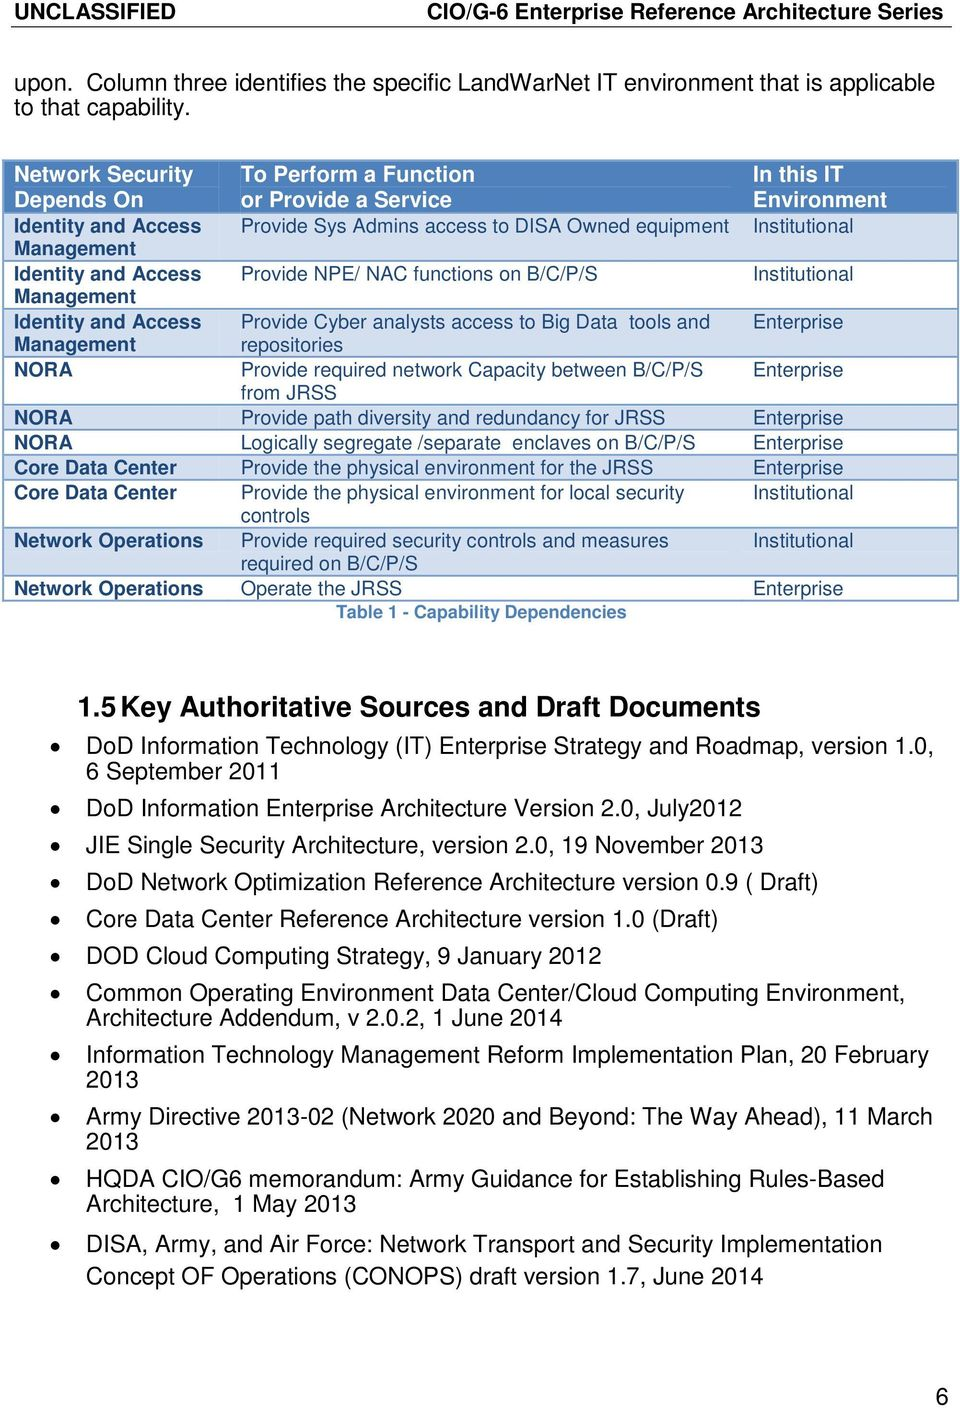 U S  Army - Network Security Enterprise Reference